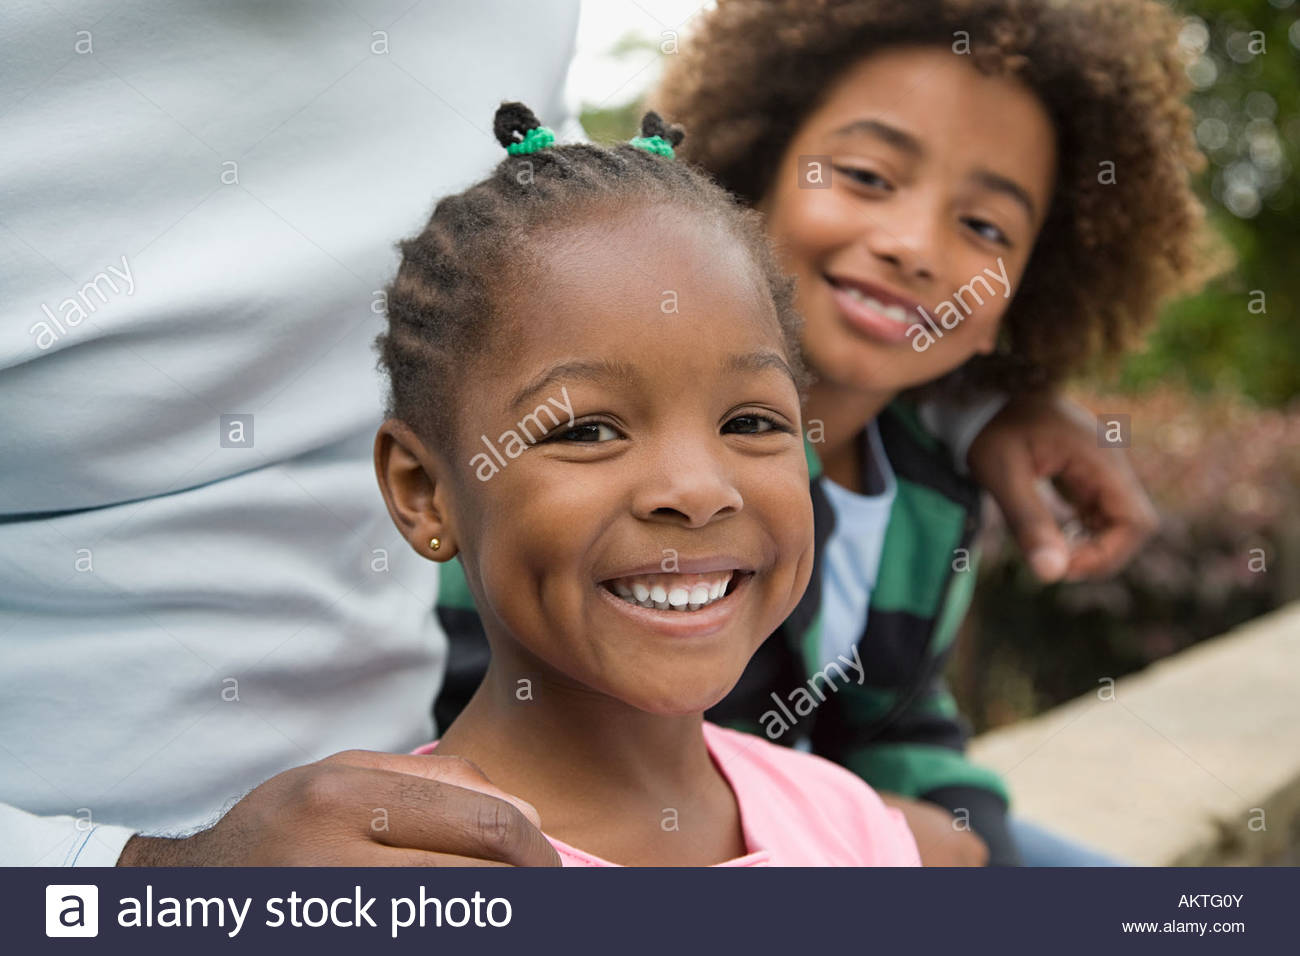 Girl and boy smiling - Stock Image